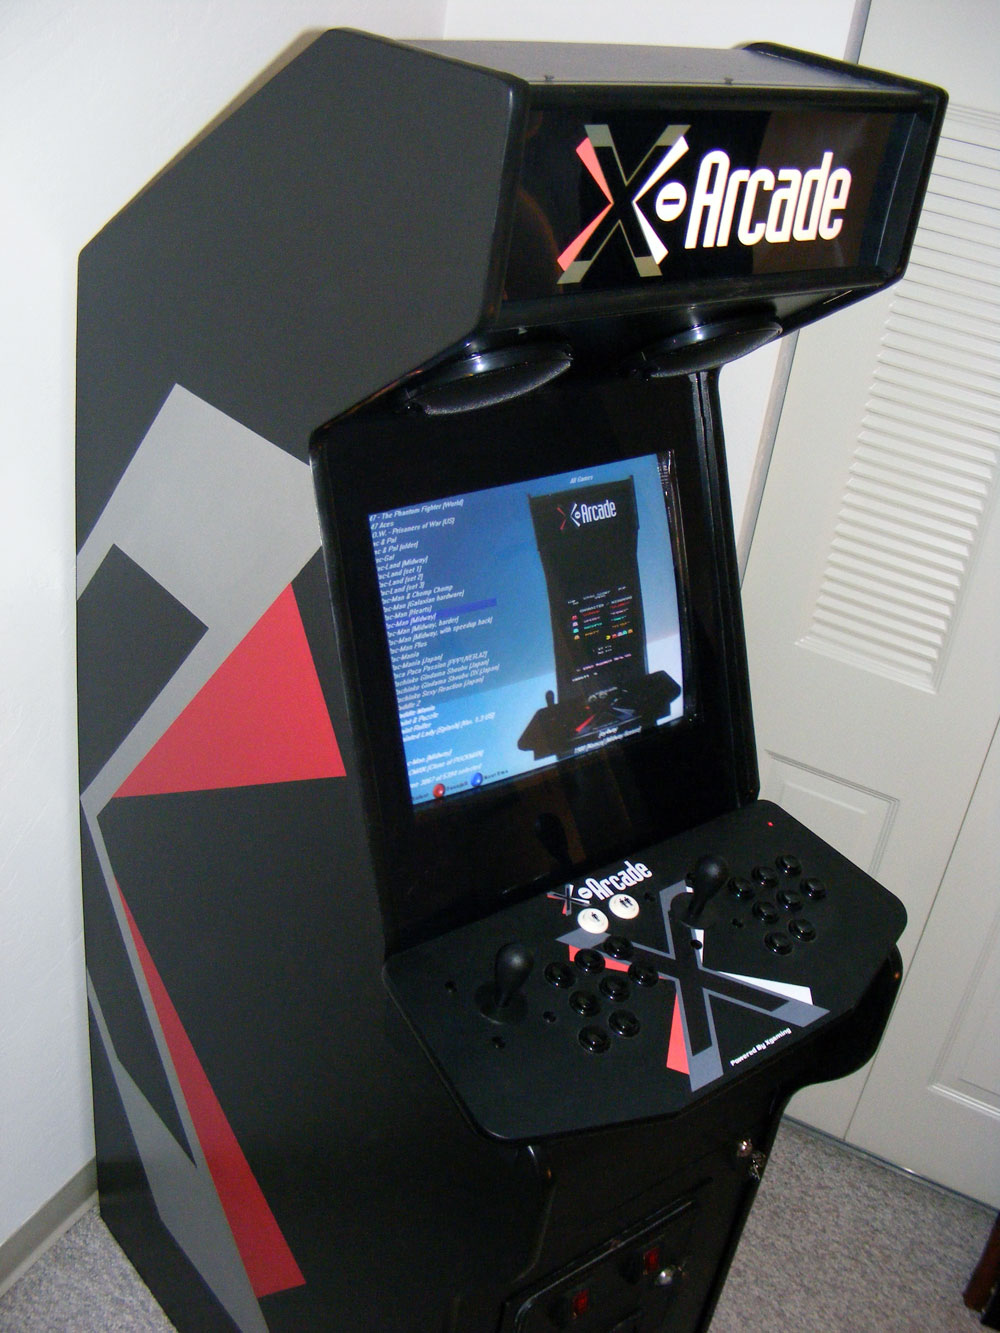 Blake W's X-arcade-themed MAME cabinet